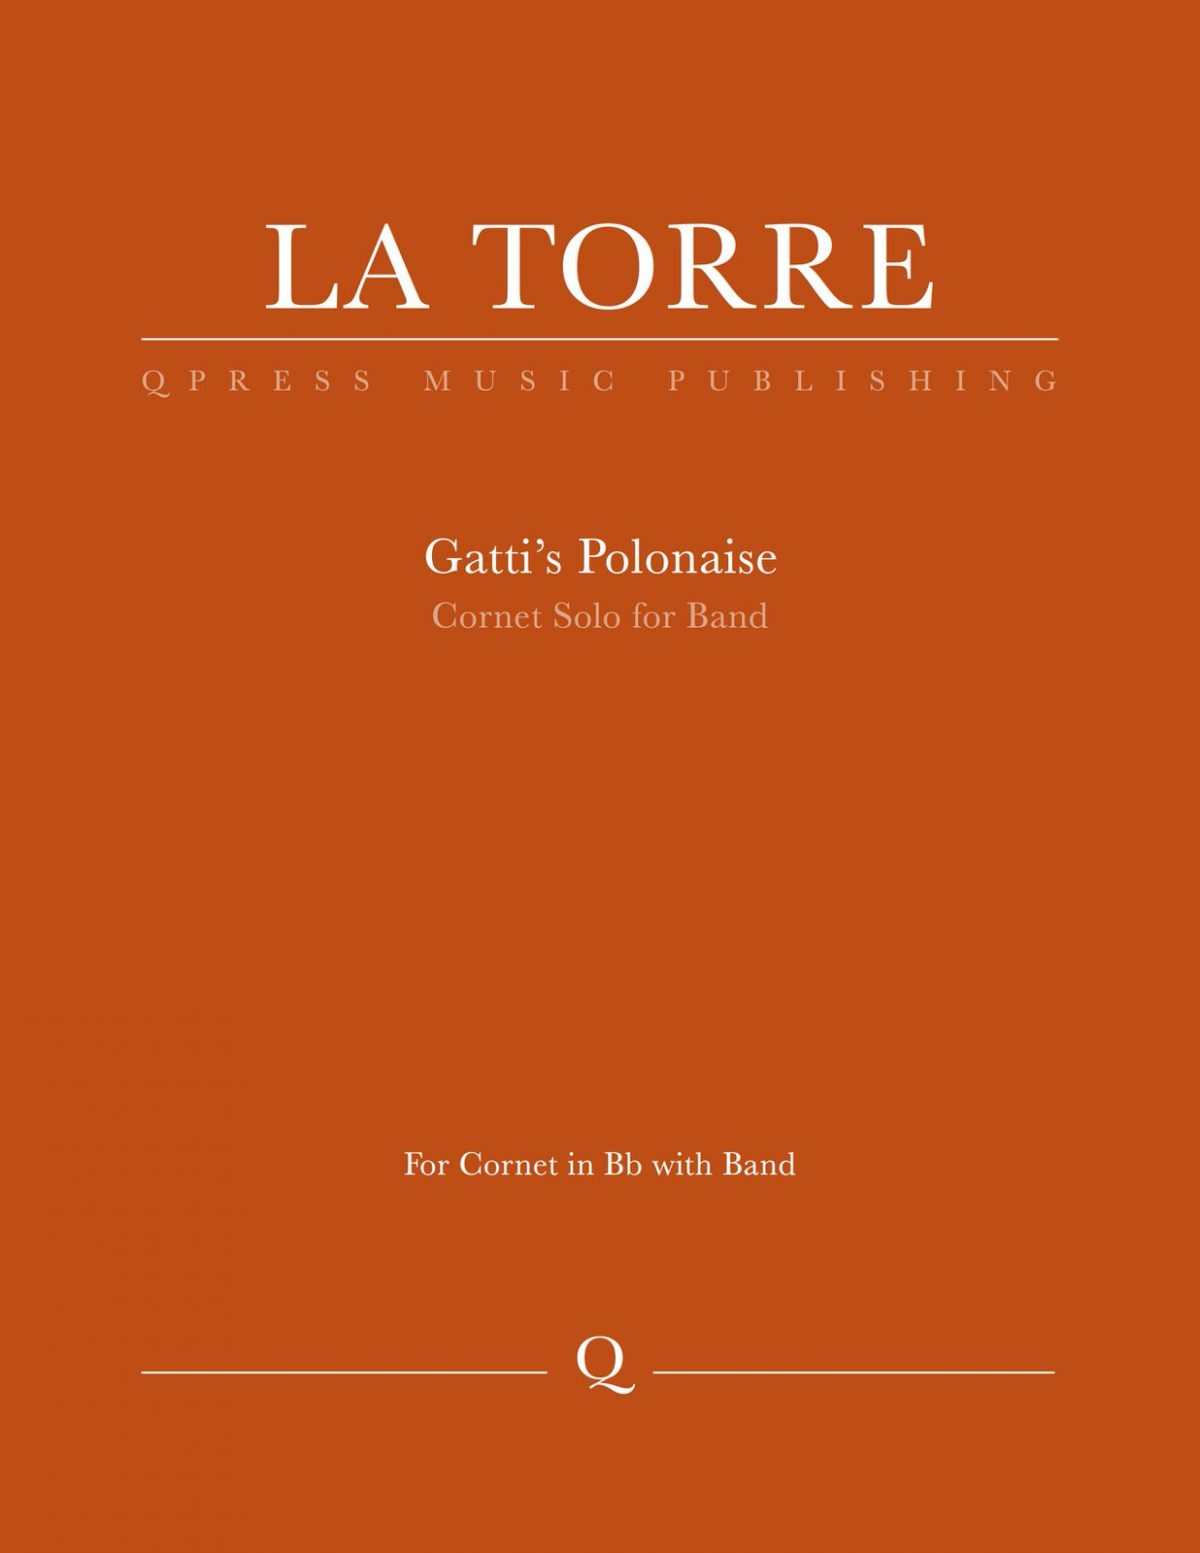 LaTorre-Gatti, Polonaise for Trumpet and band-p01